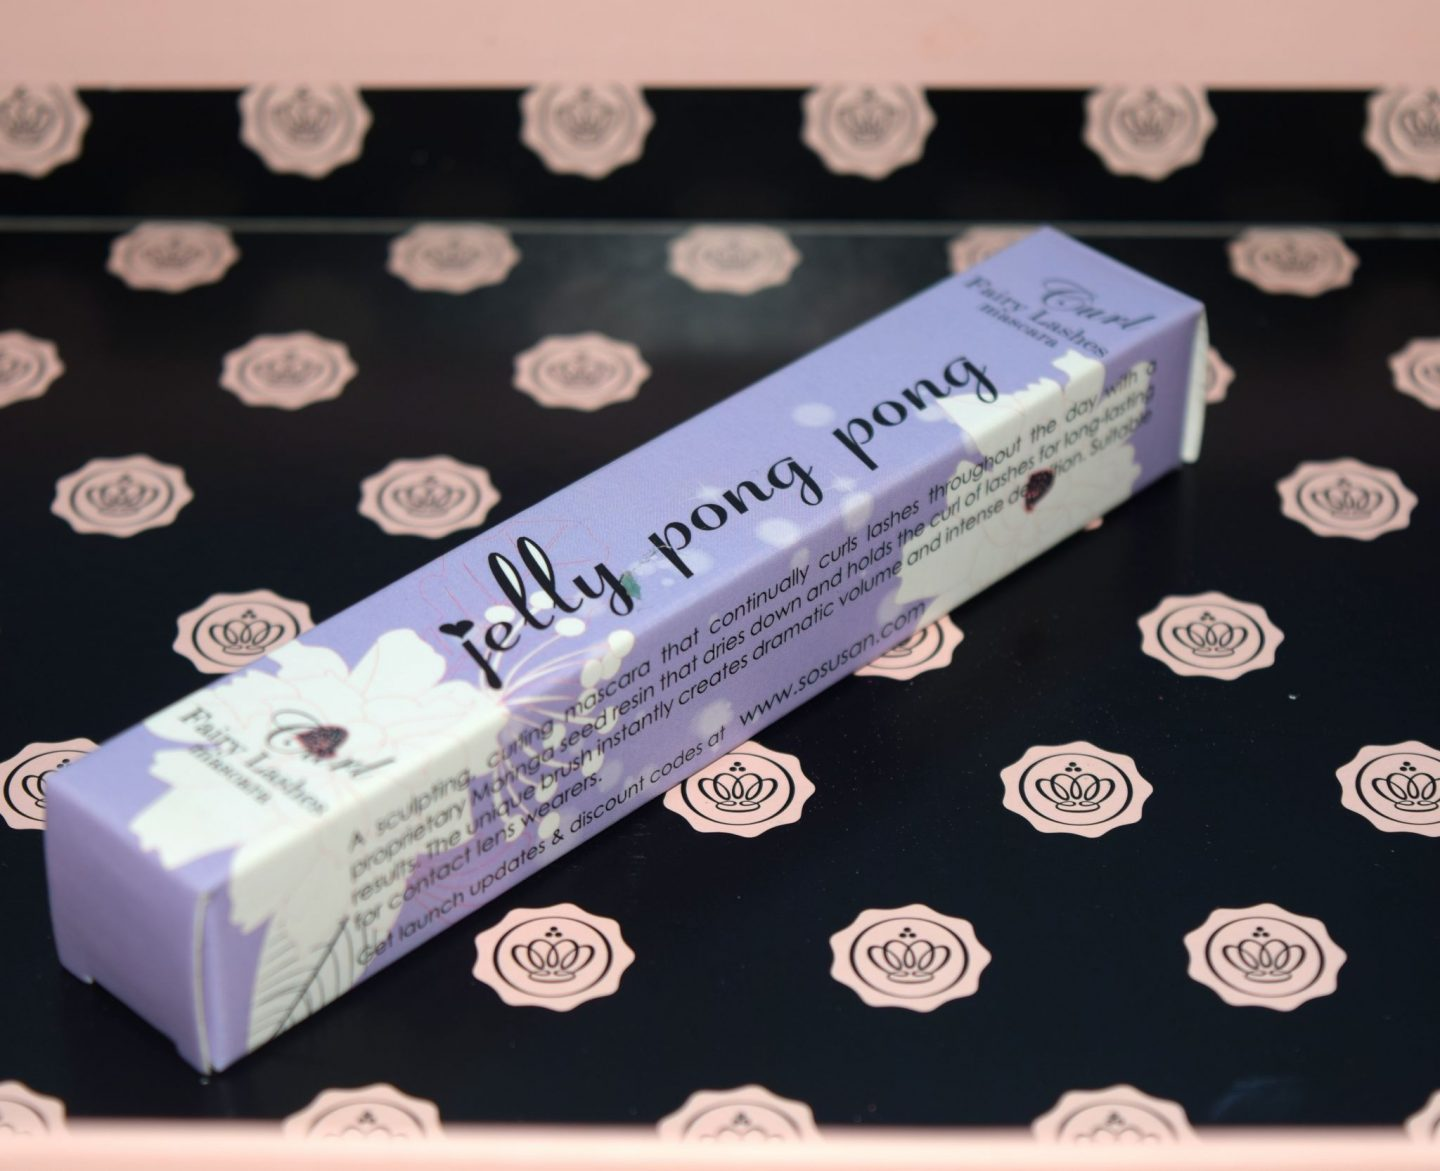 Glossybox October 2015 UK Jelly Pong Pong Fairy Lashes